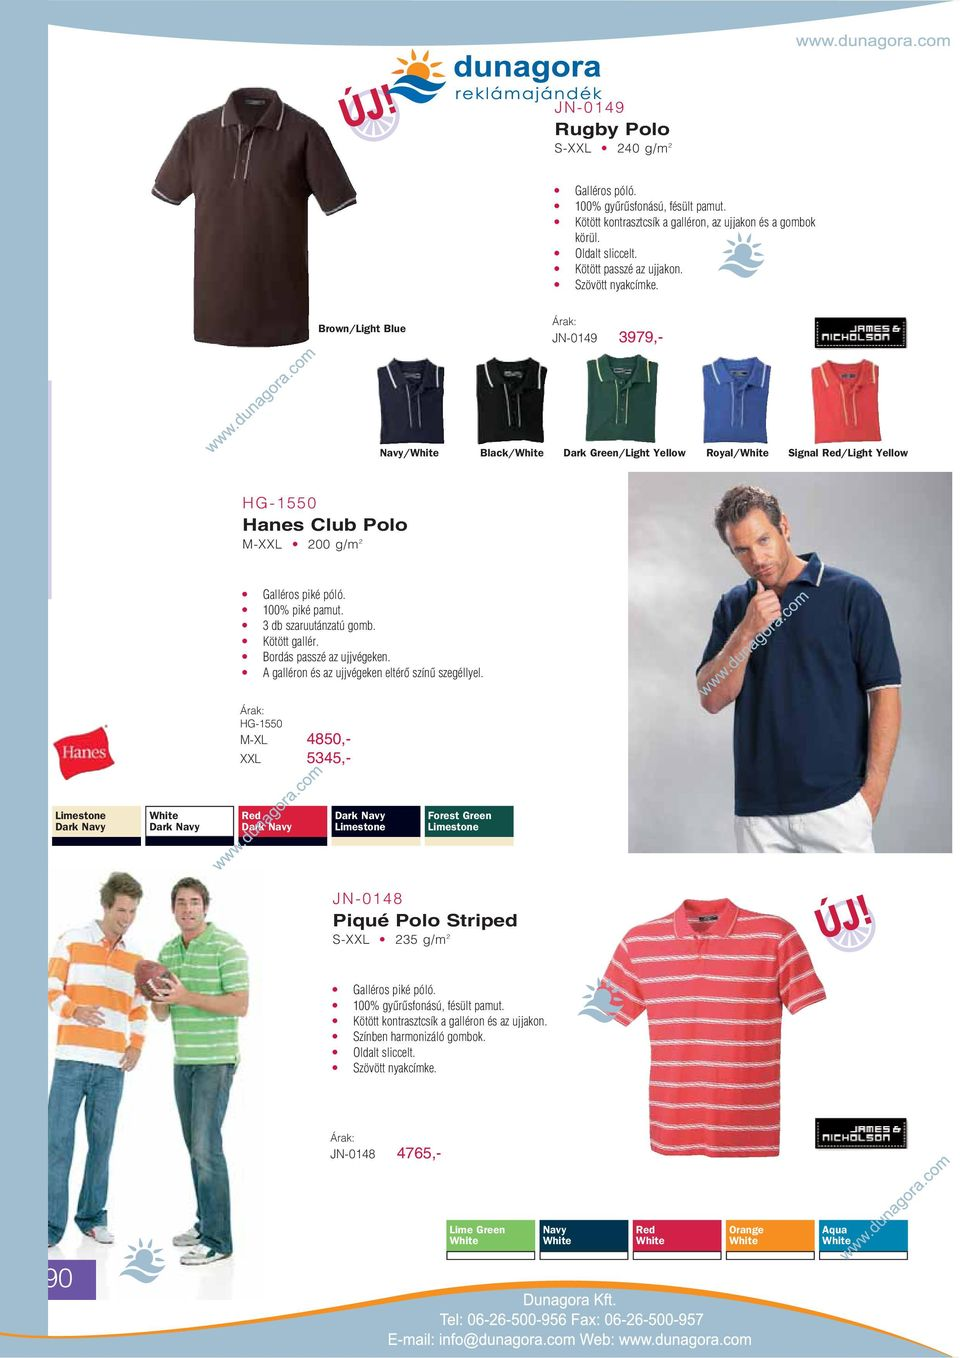 Brown/Light Blue JN-0149 3979,- / Black/ Dark Green/Light Yellow Royal/ Signal Red/Light Yellow HG-1550 Hanes Club Polo M-XXL 200 g/m 2 100% piké pamut.